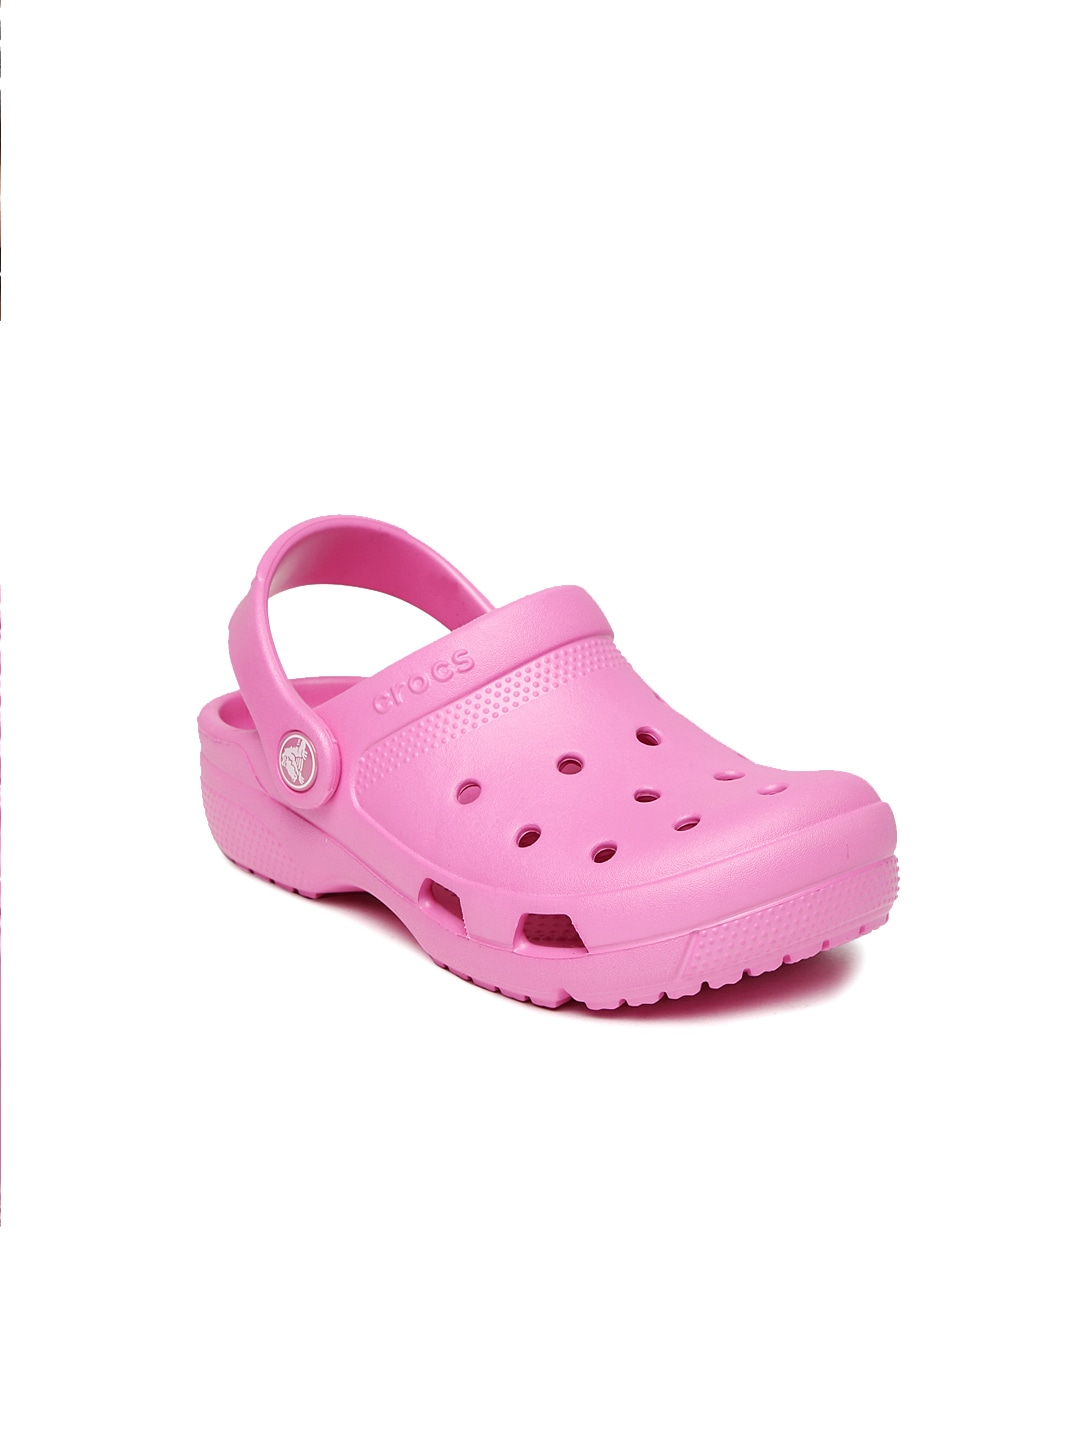 7eef1d166cb1e3 Crocs Shoes Online - Buy Crocs Flip Flops   Sandals Online in India - Myntra